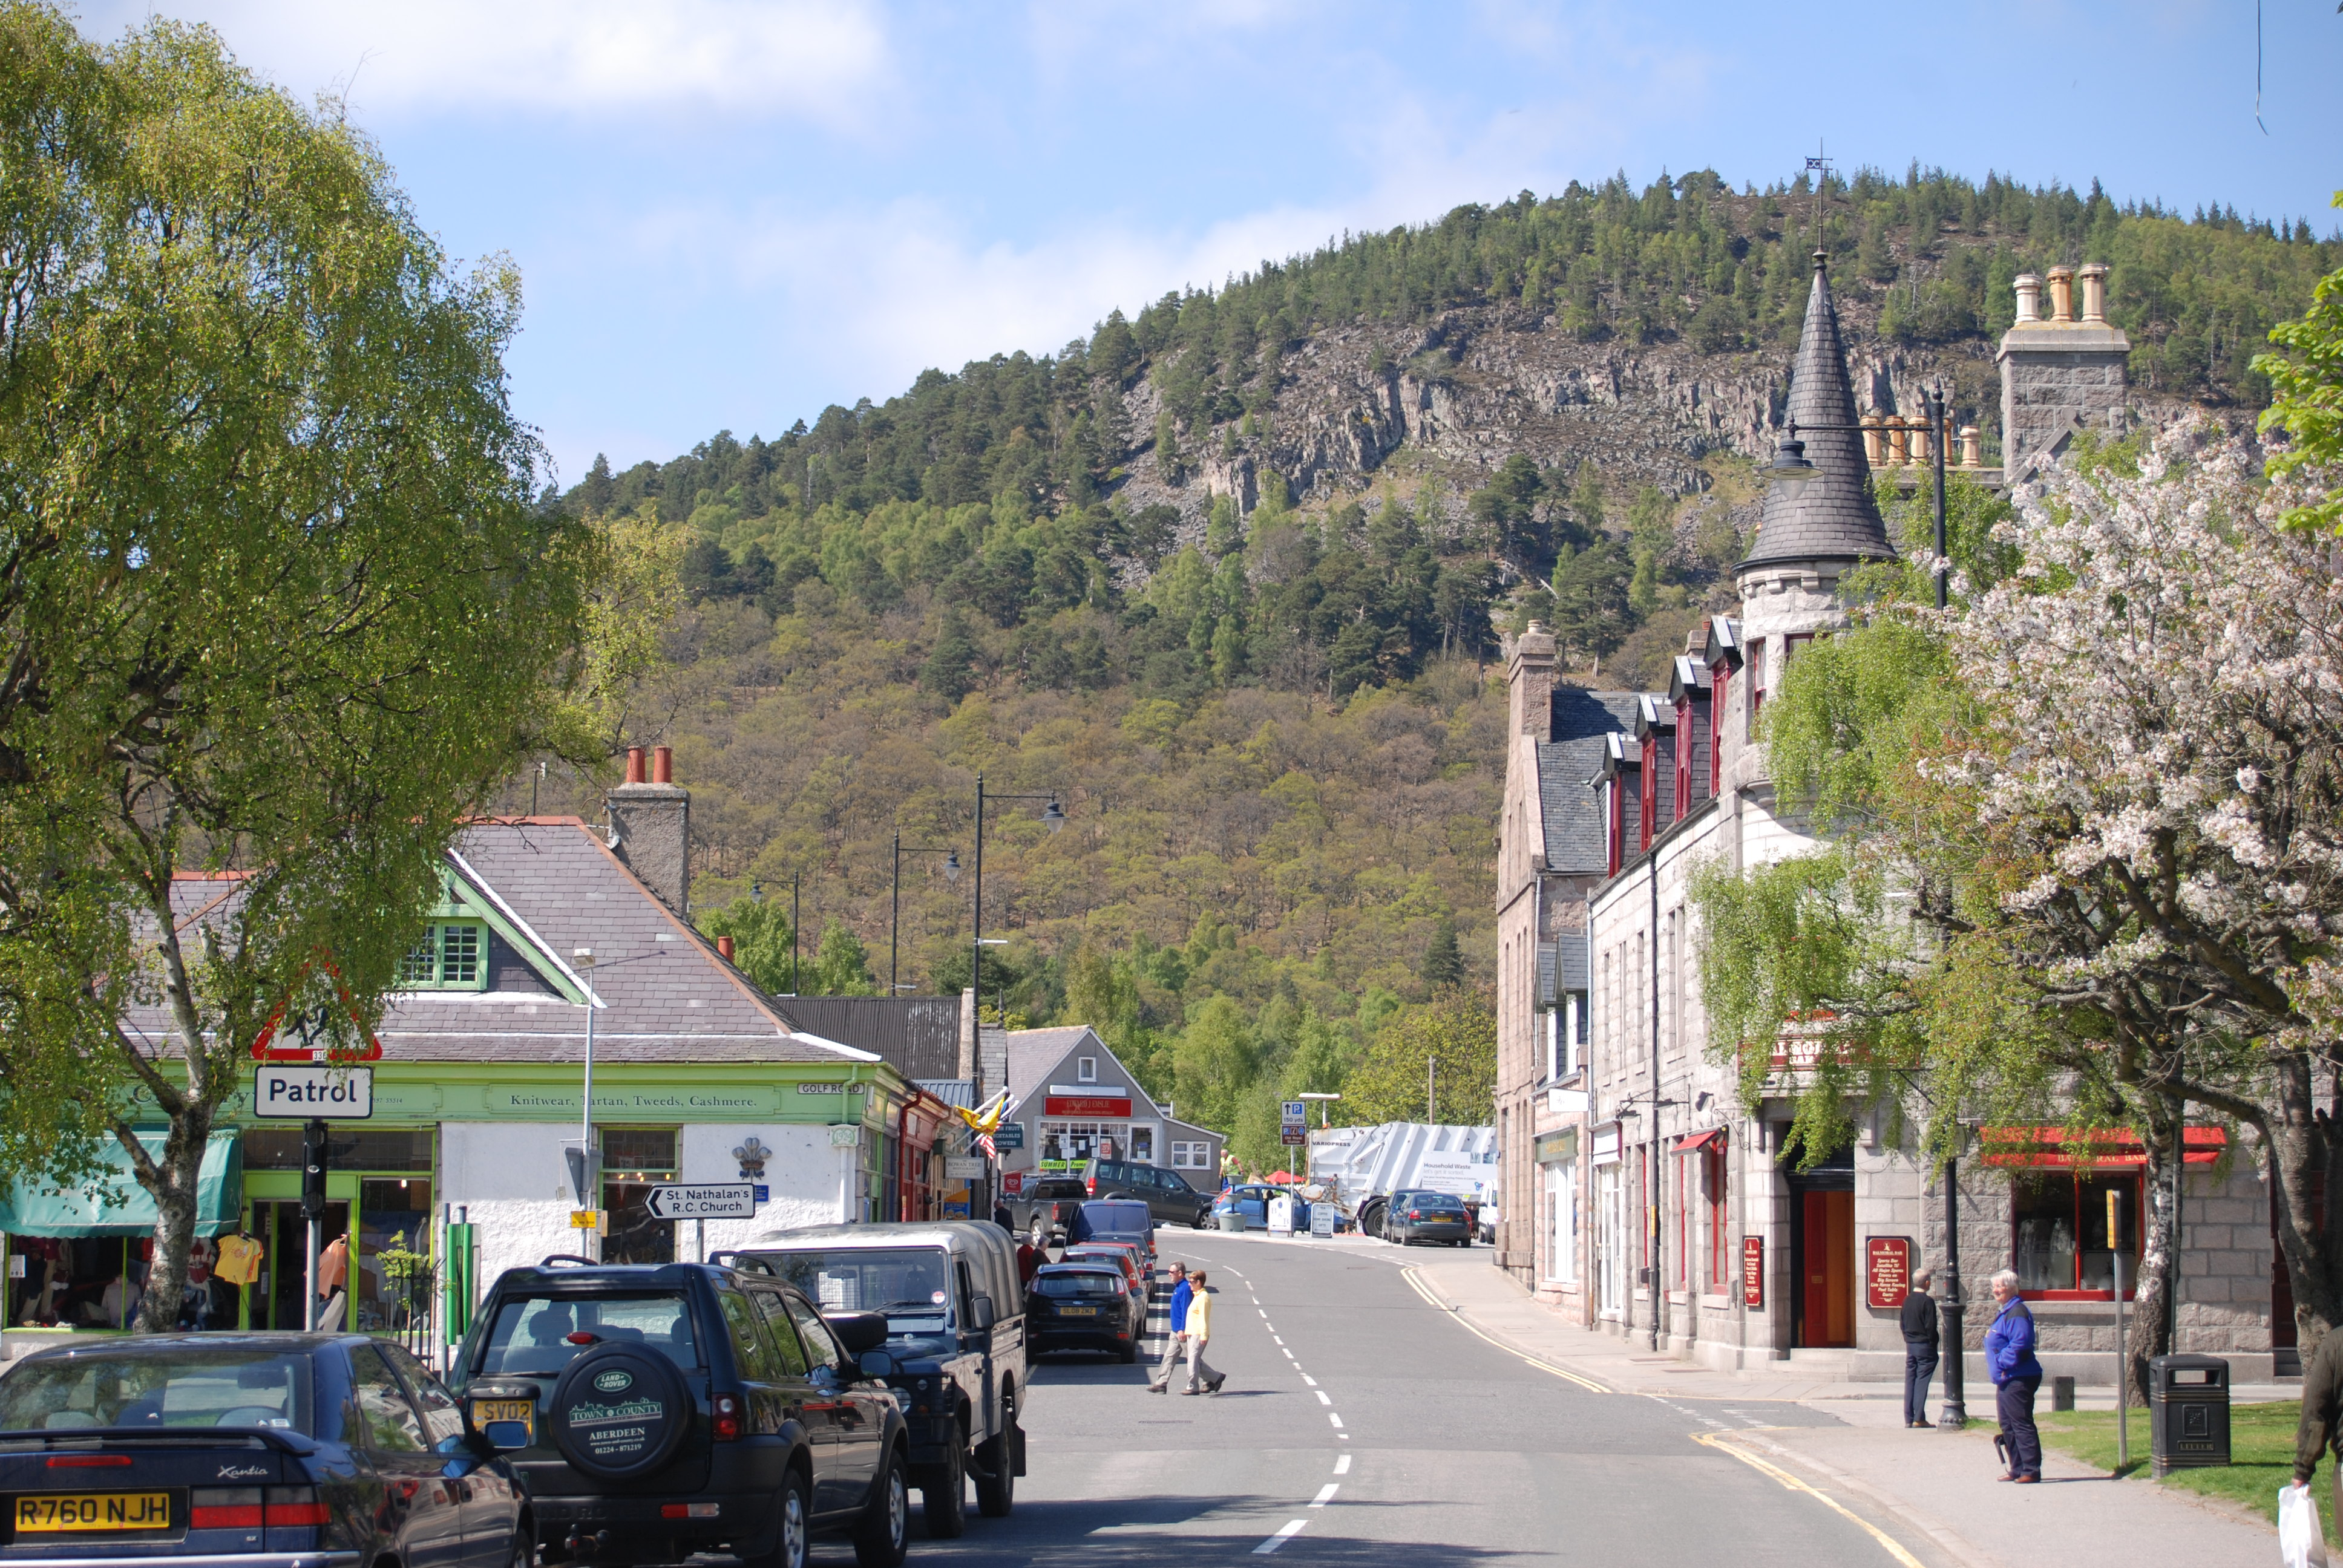 WELCOME TO BALLATER